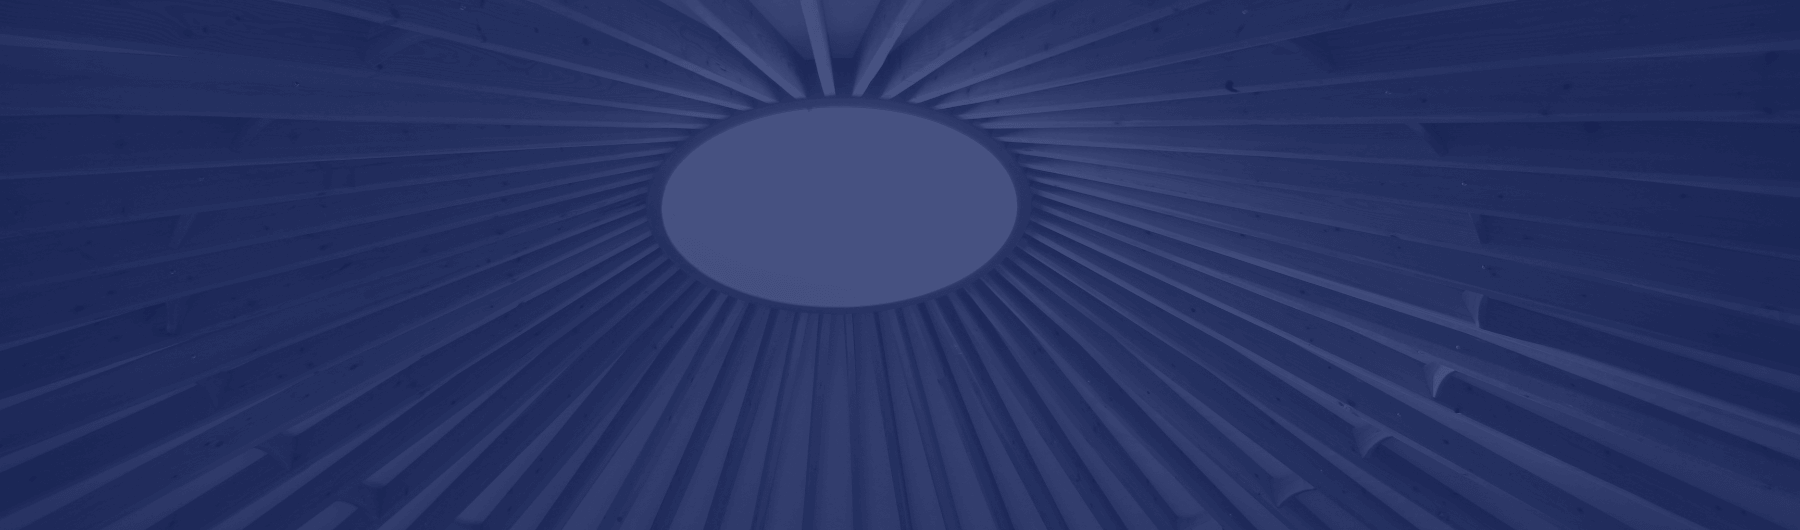 Image background dome